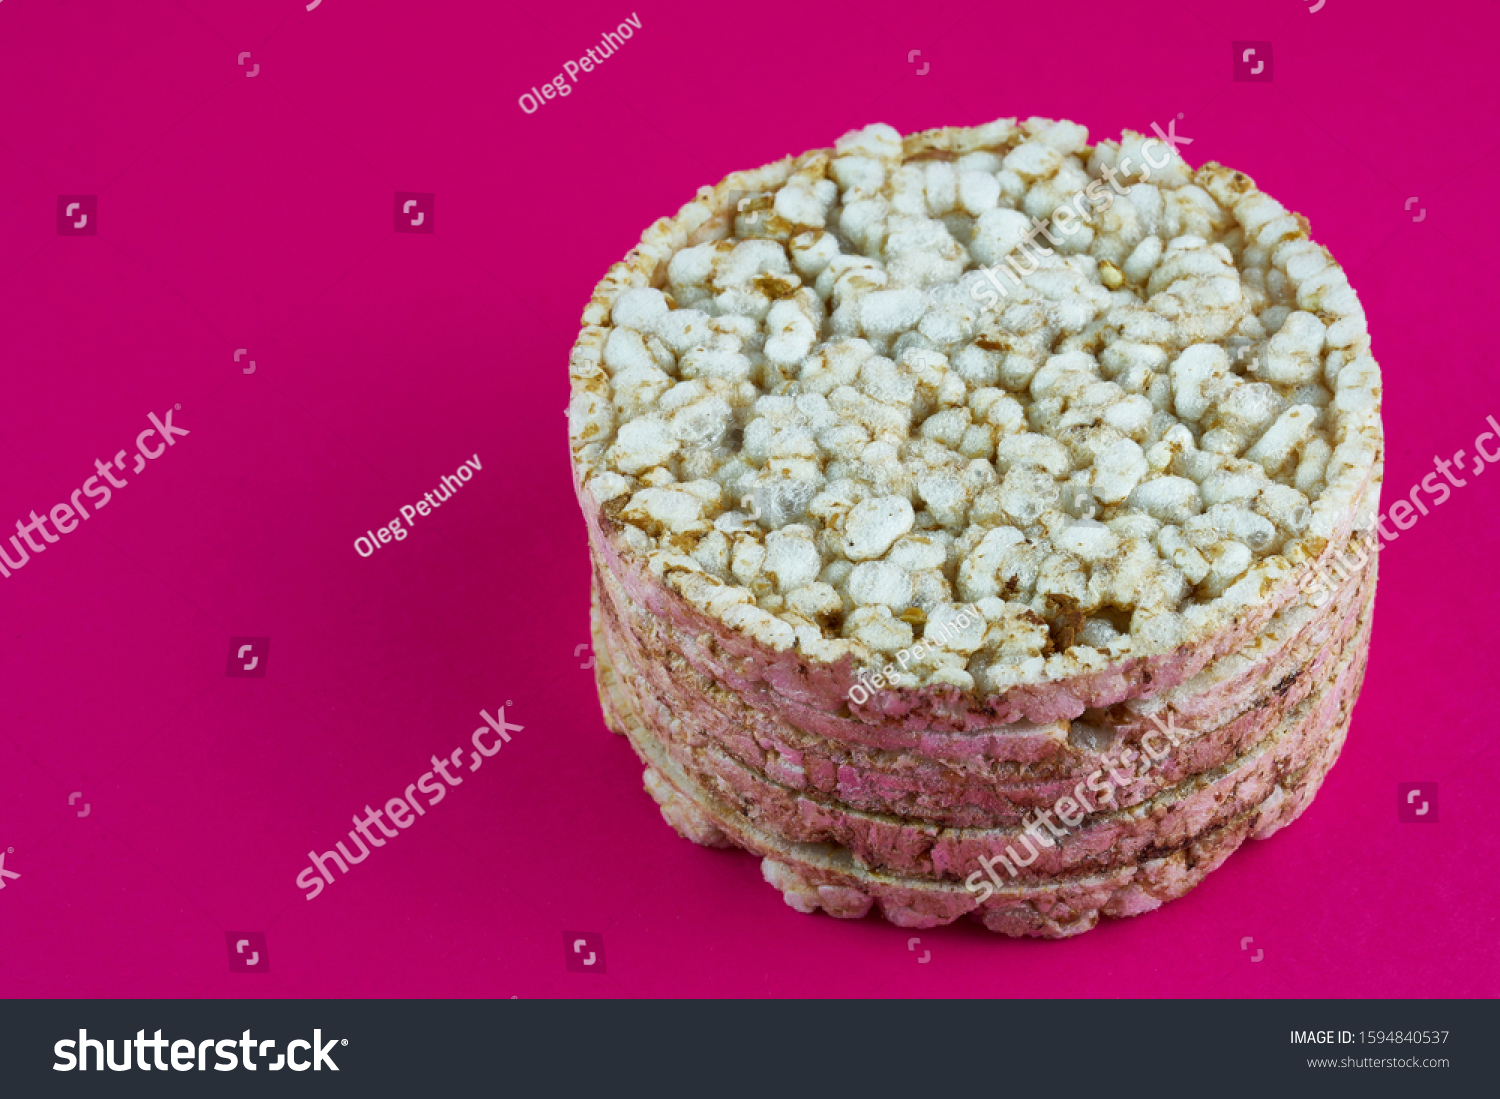 Single rice cake on the red background #1594840537